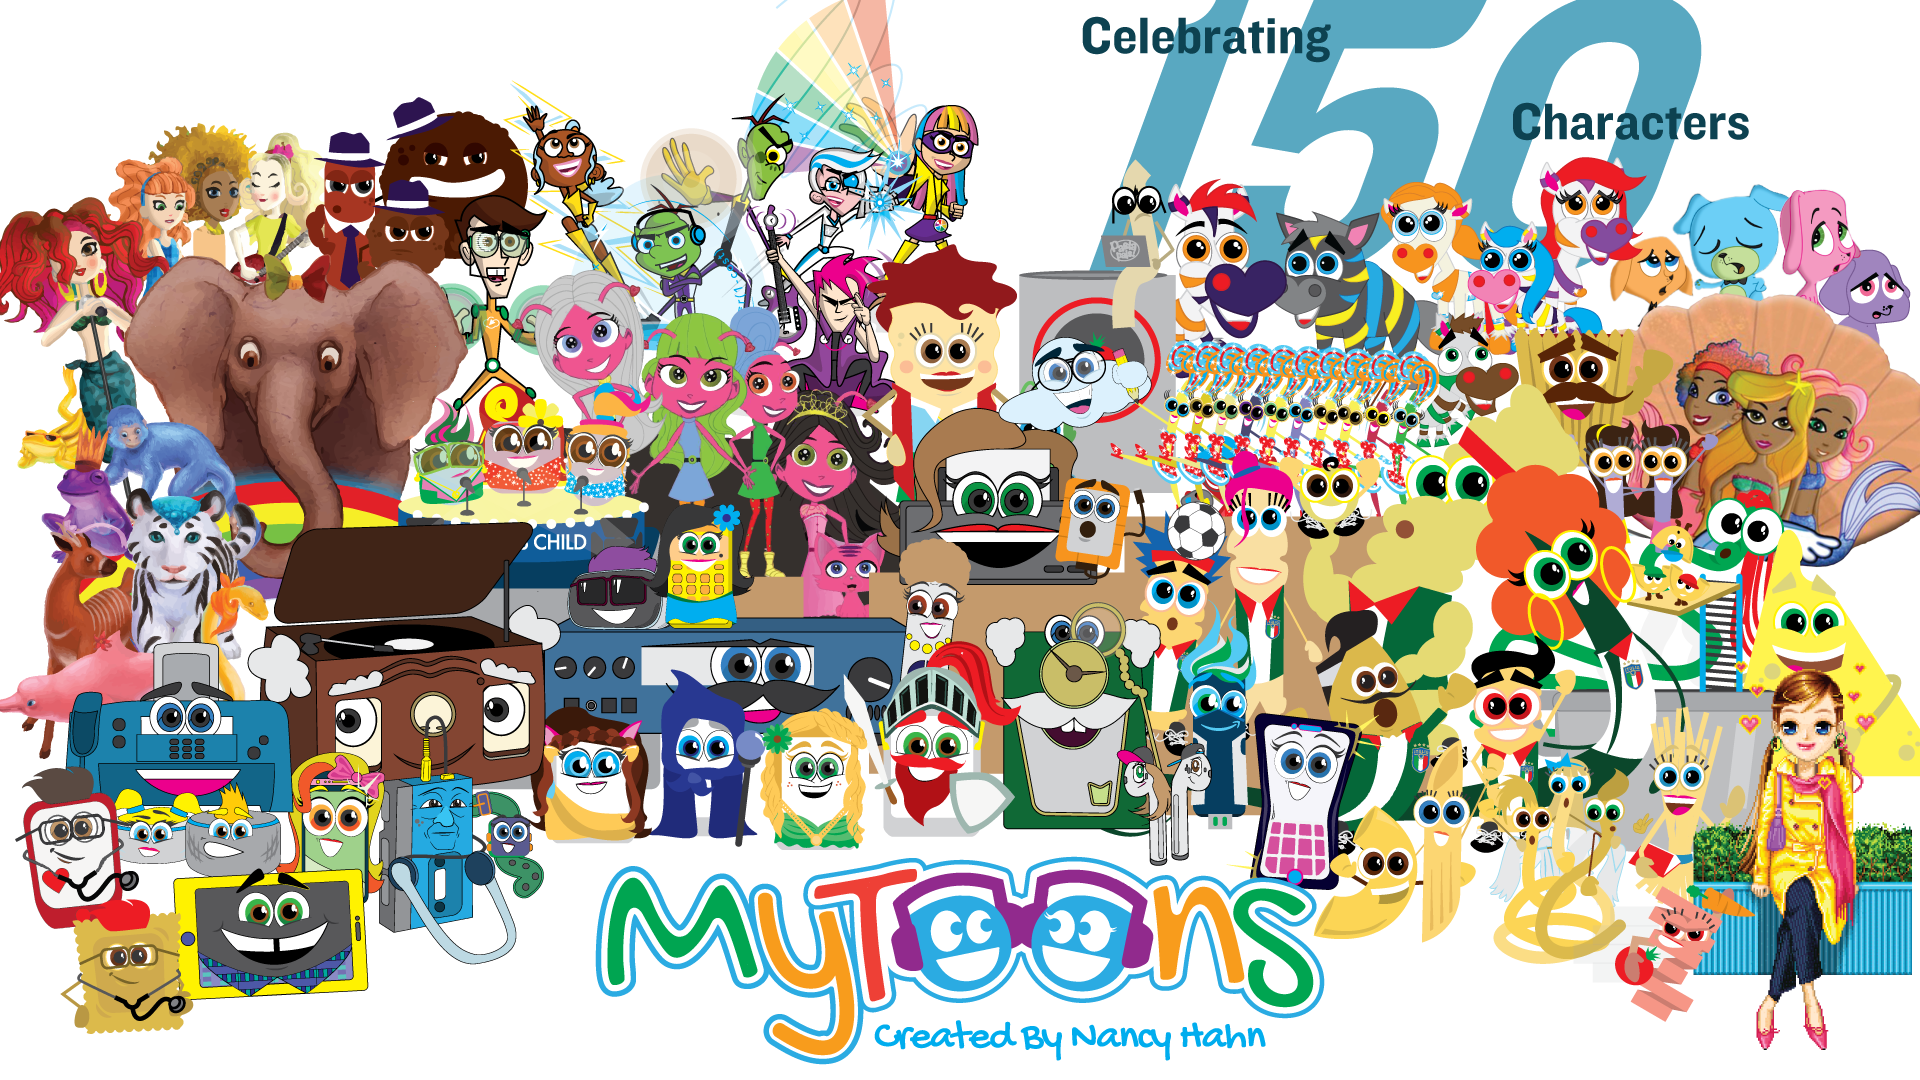 MyToons Group